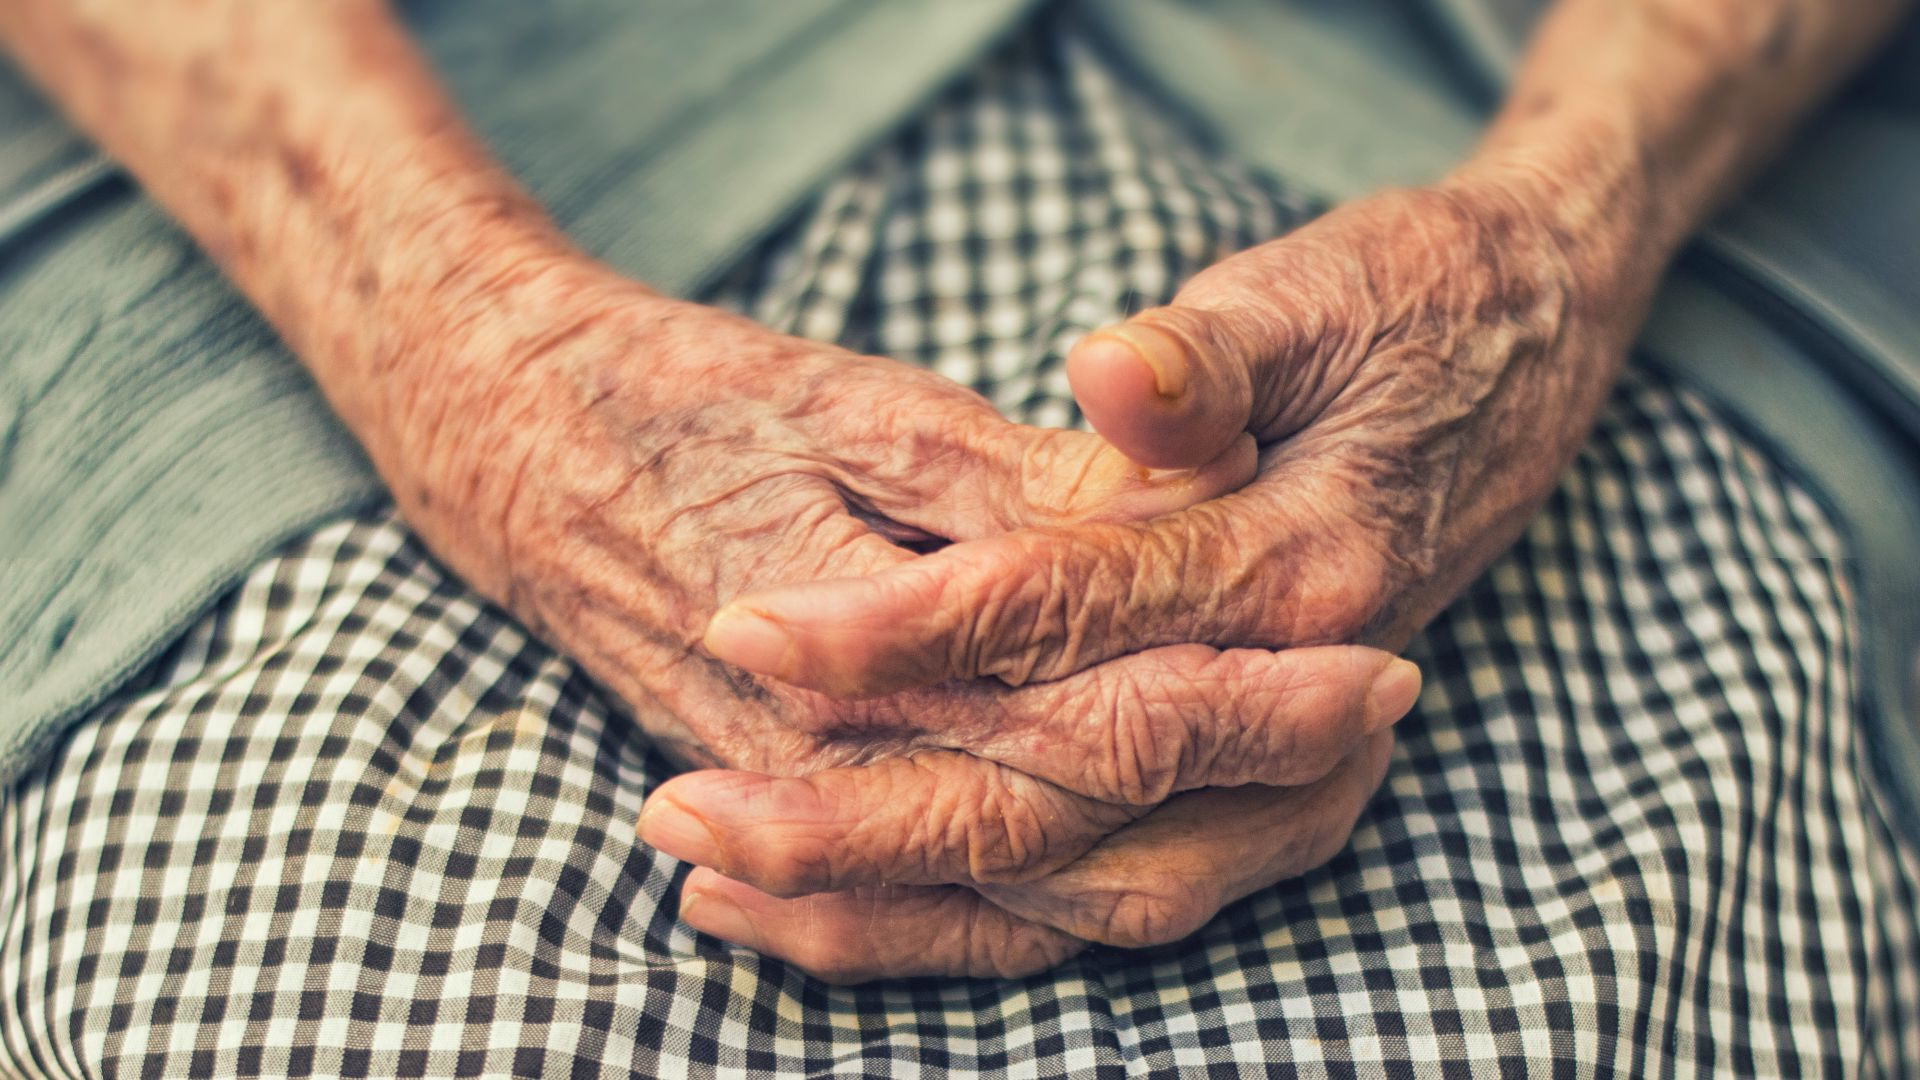 The mothballs in 'new' aged care findings. Will the government act this time?